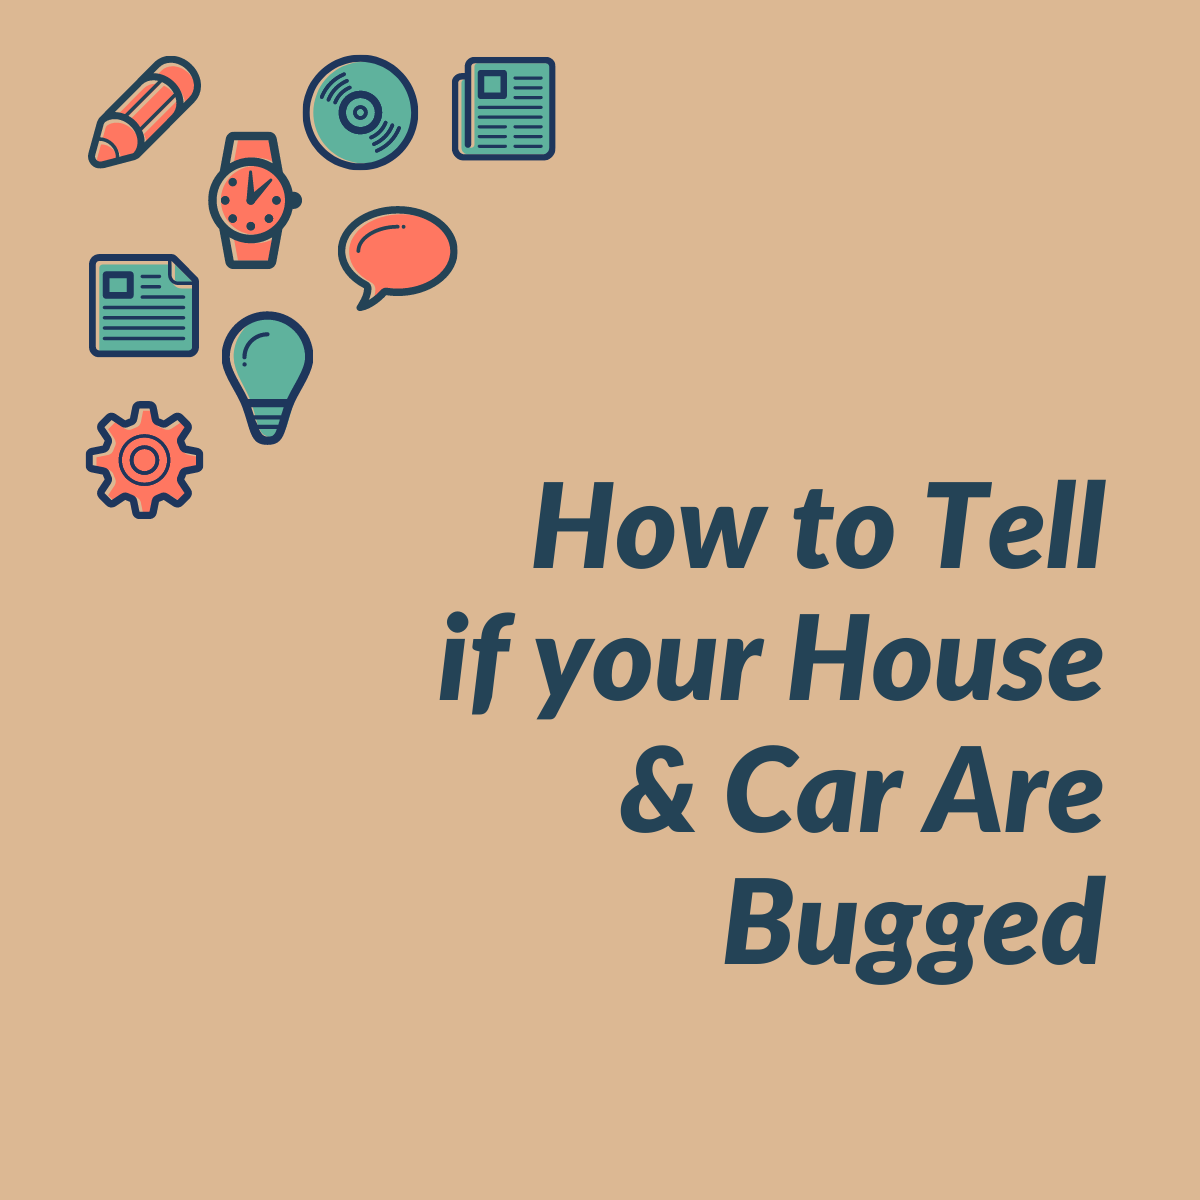 How to Tell If Your House & Car Are Bugged